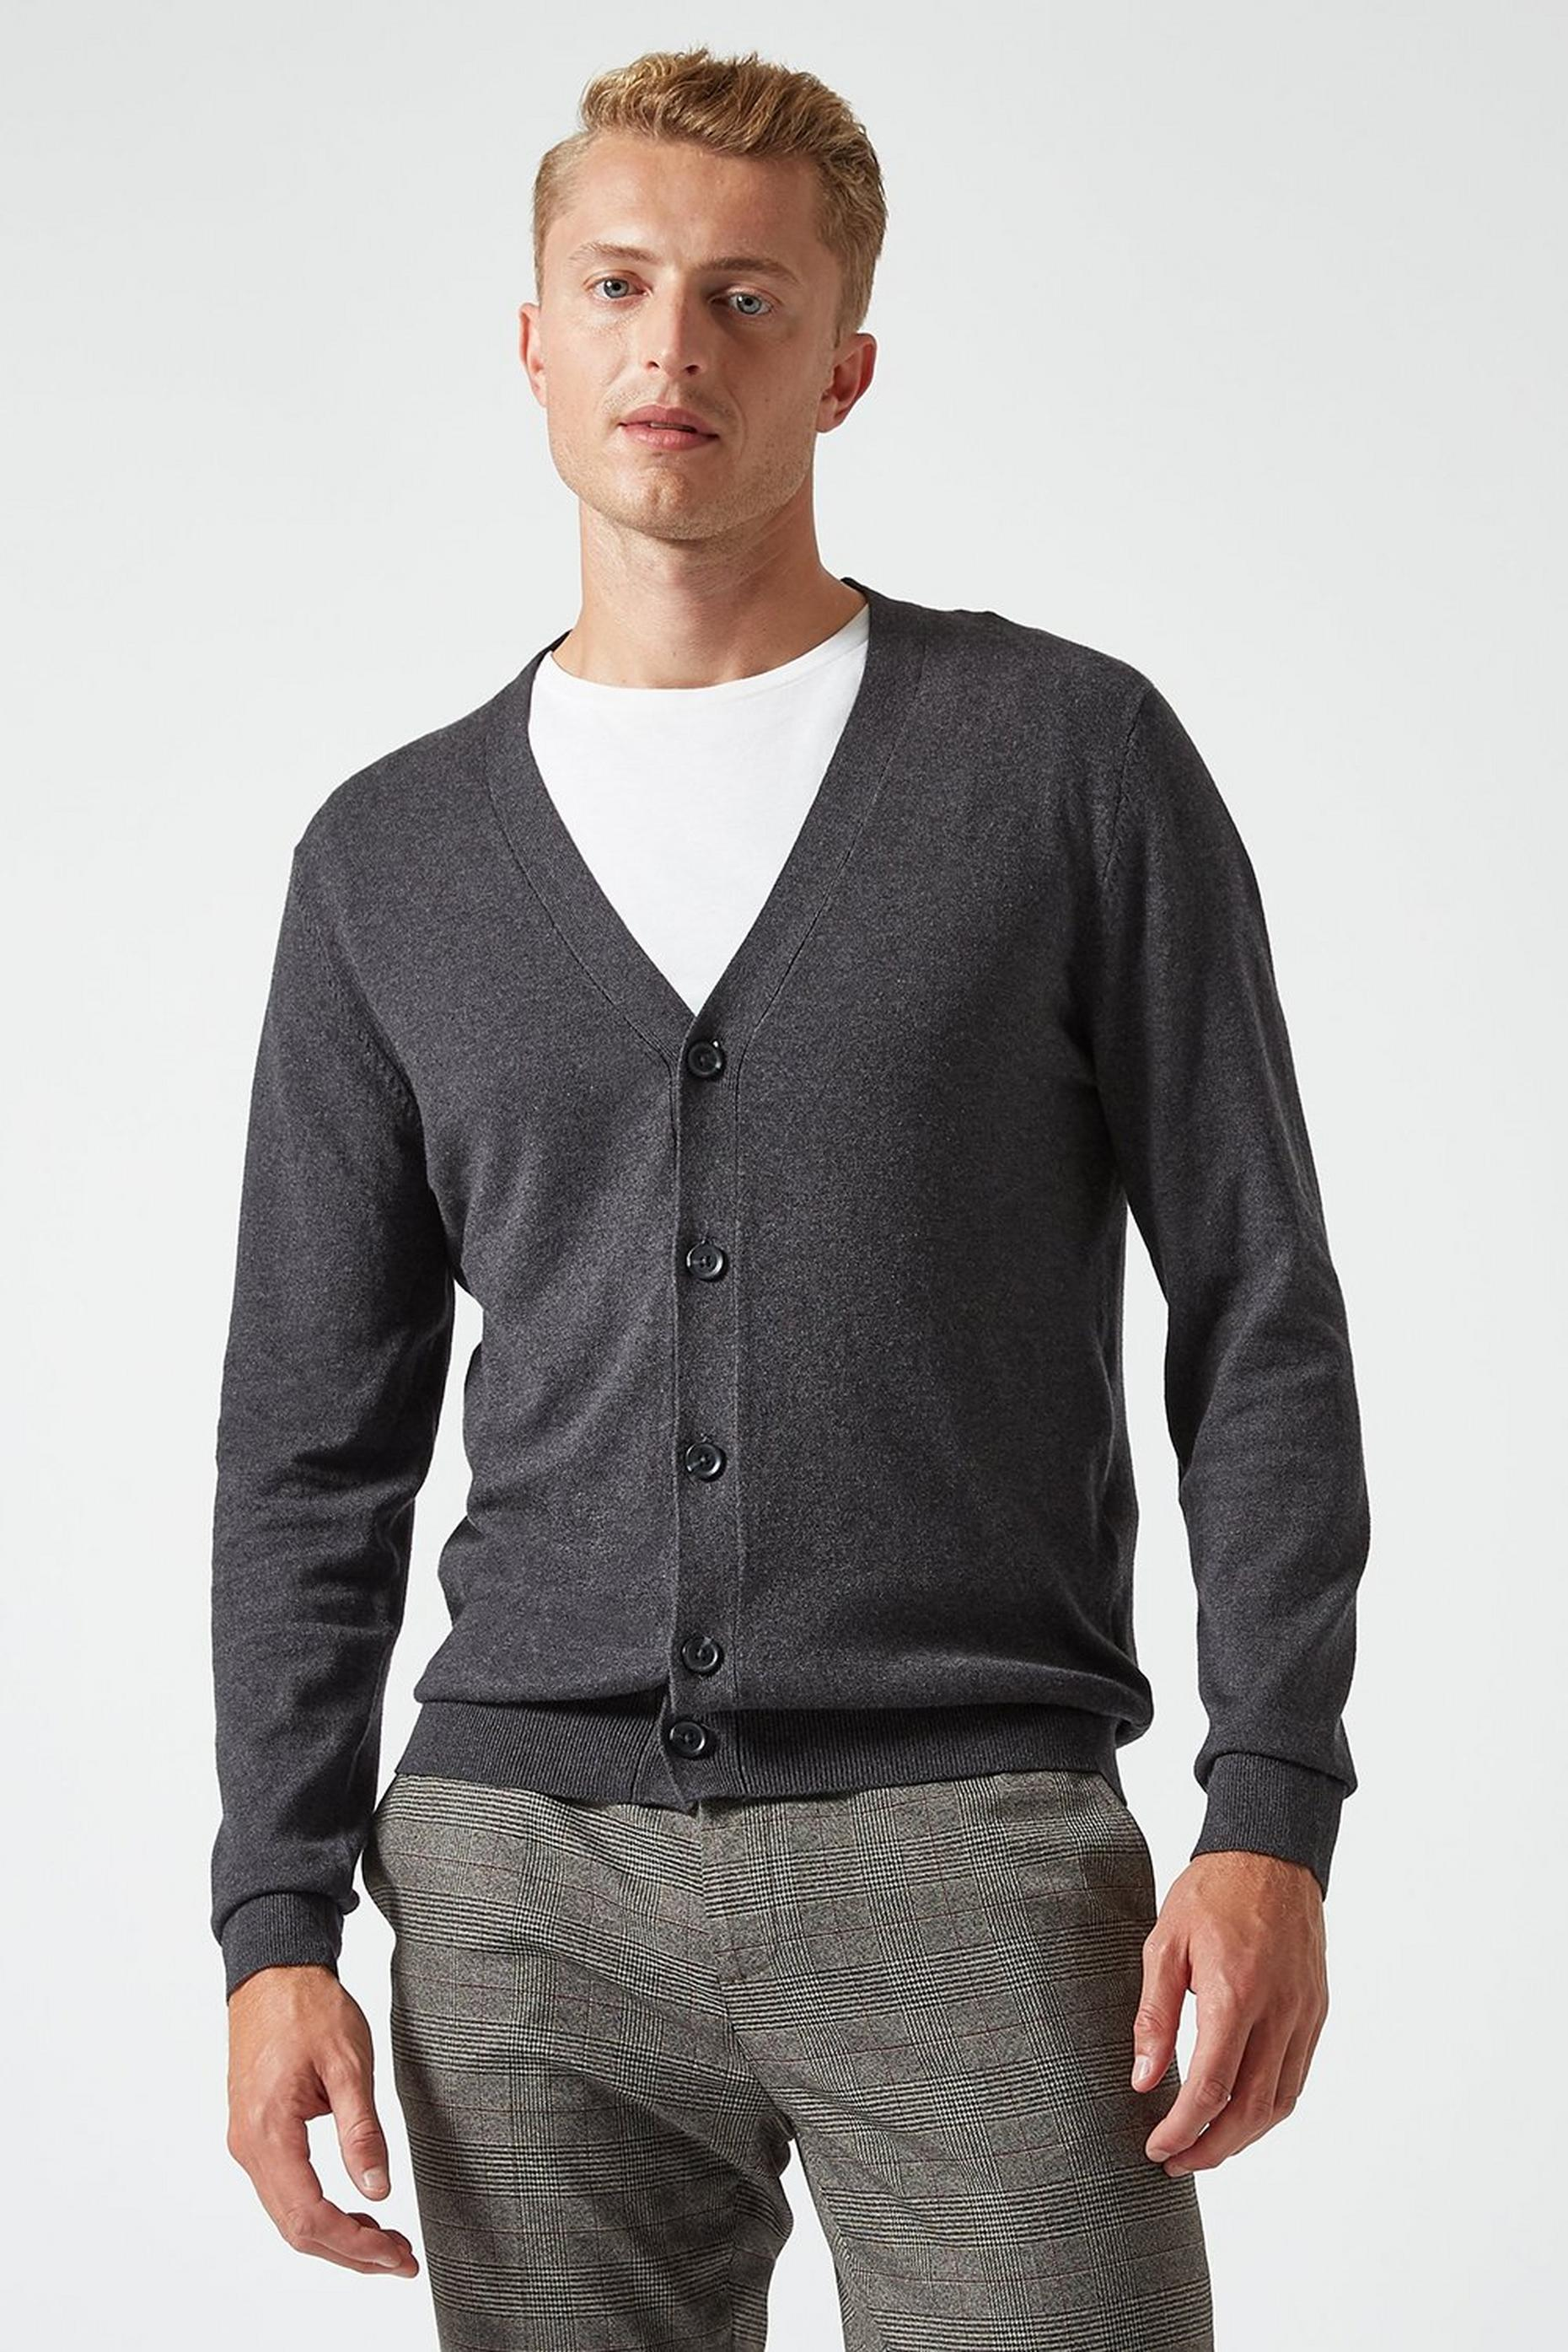 Charcoal Grey Cardigan with Organic Cotton